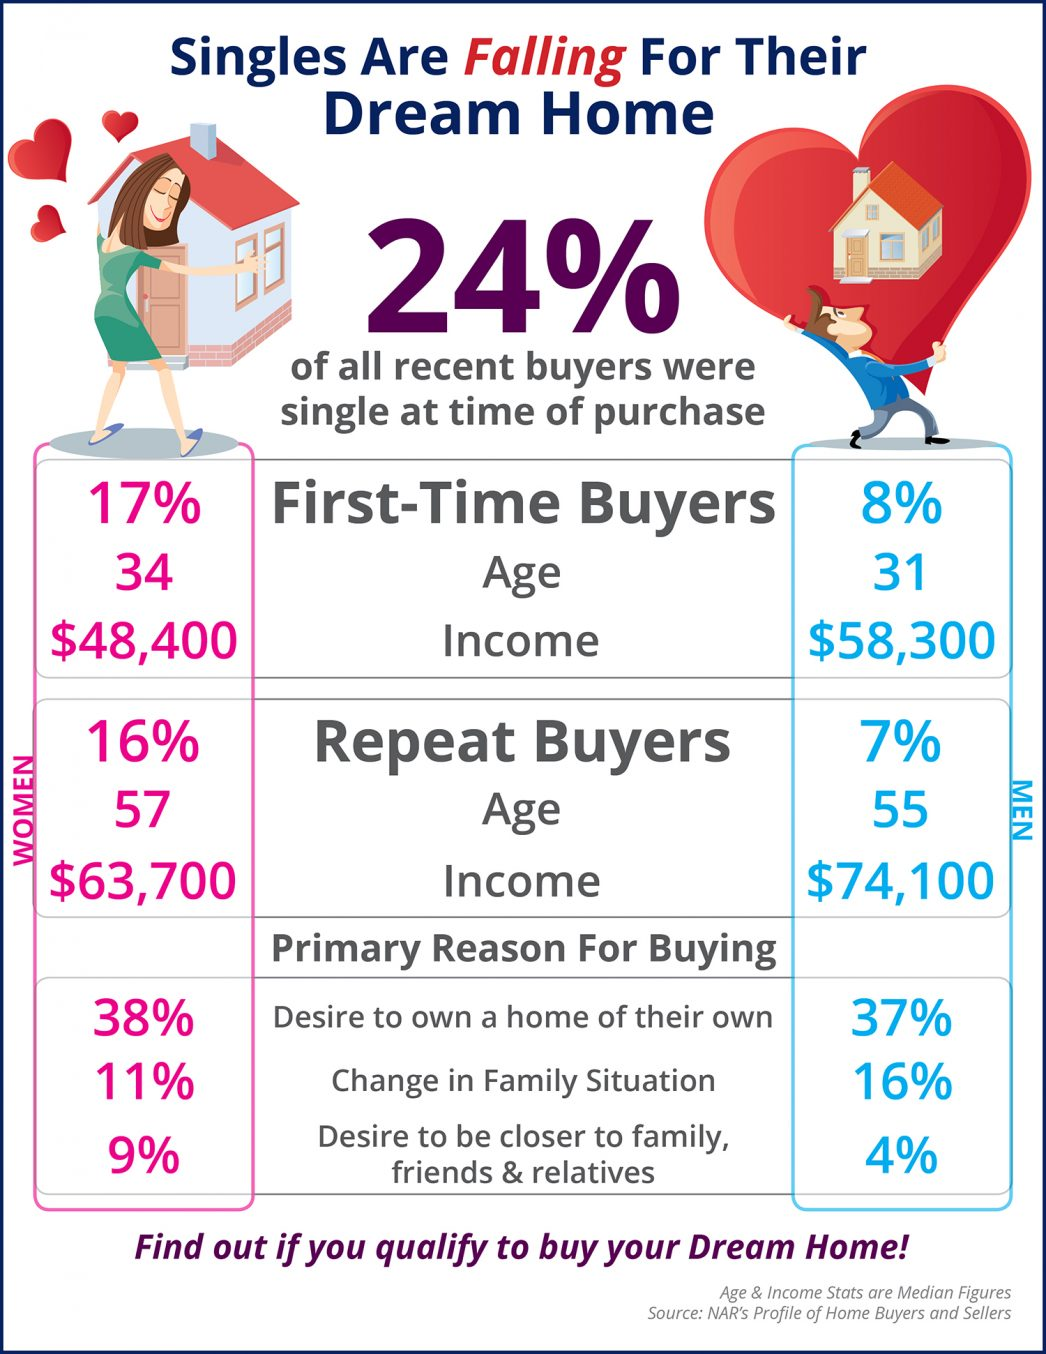 20170721-single-homebuyers-stm-1046x1354